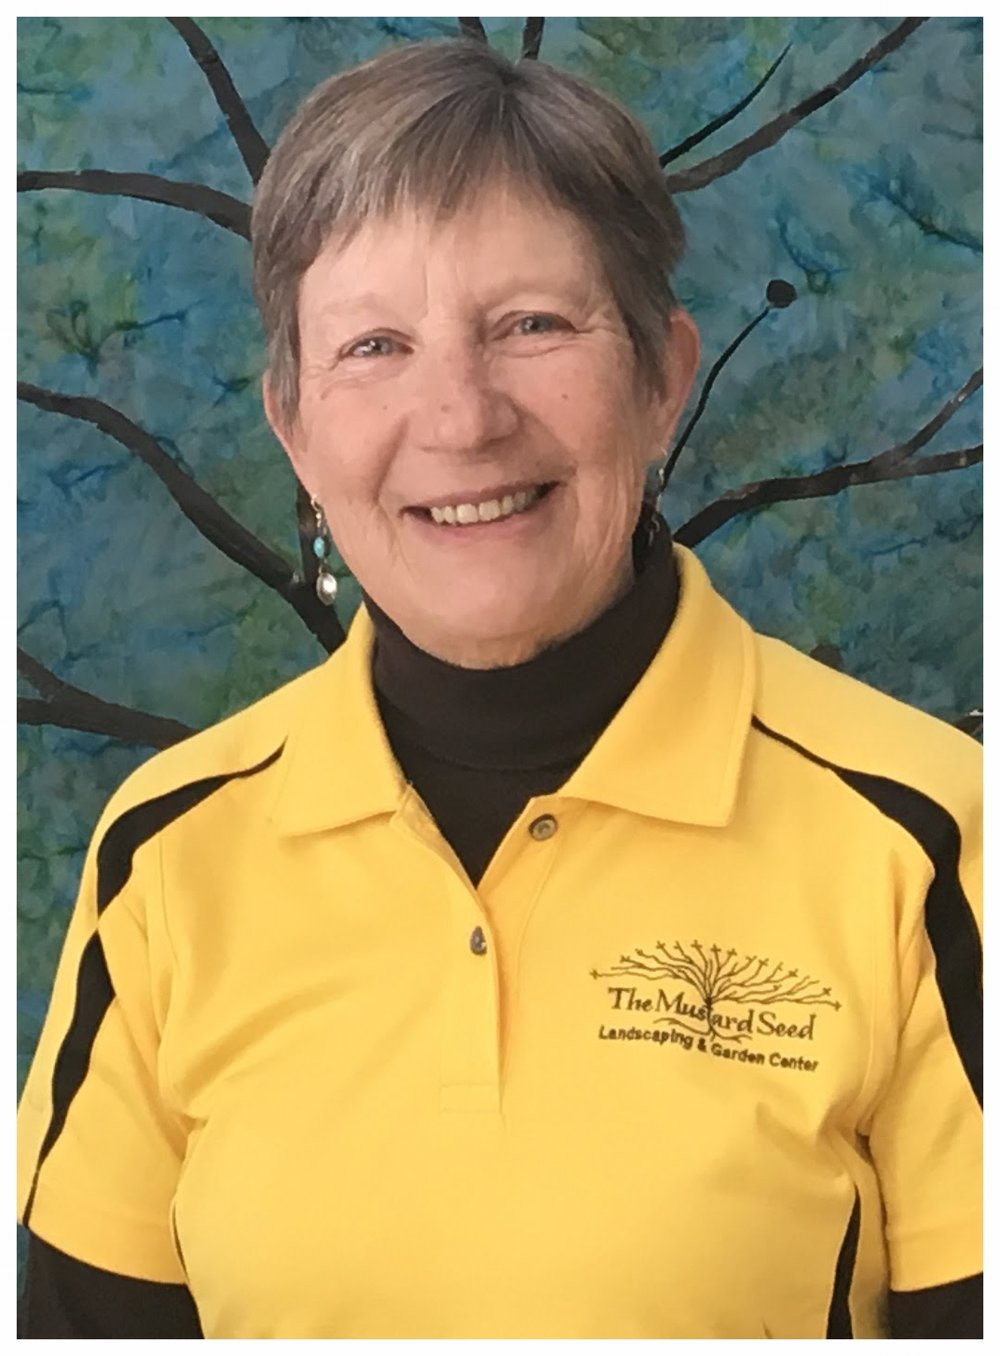 Jill Edwardsen Garden Center Manager